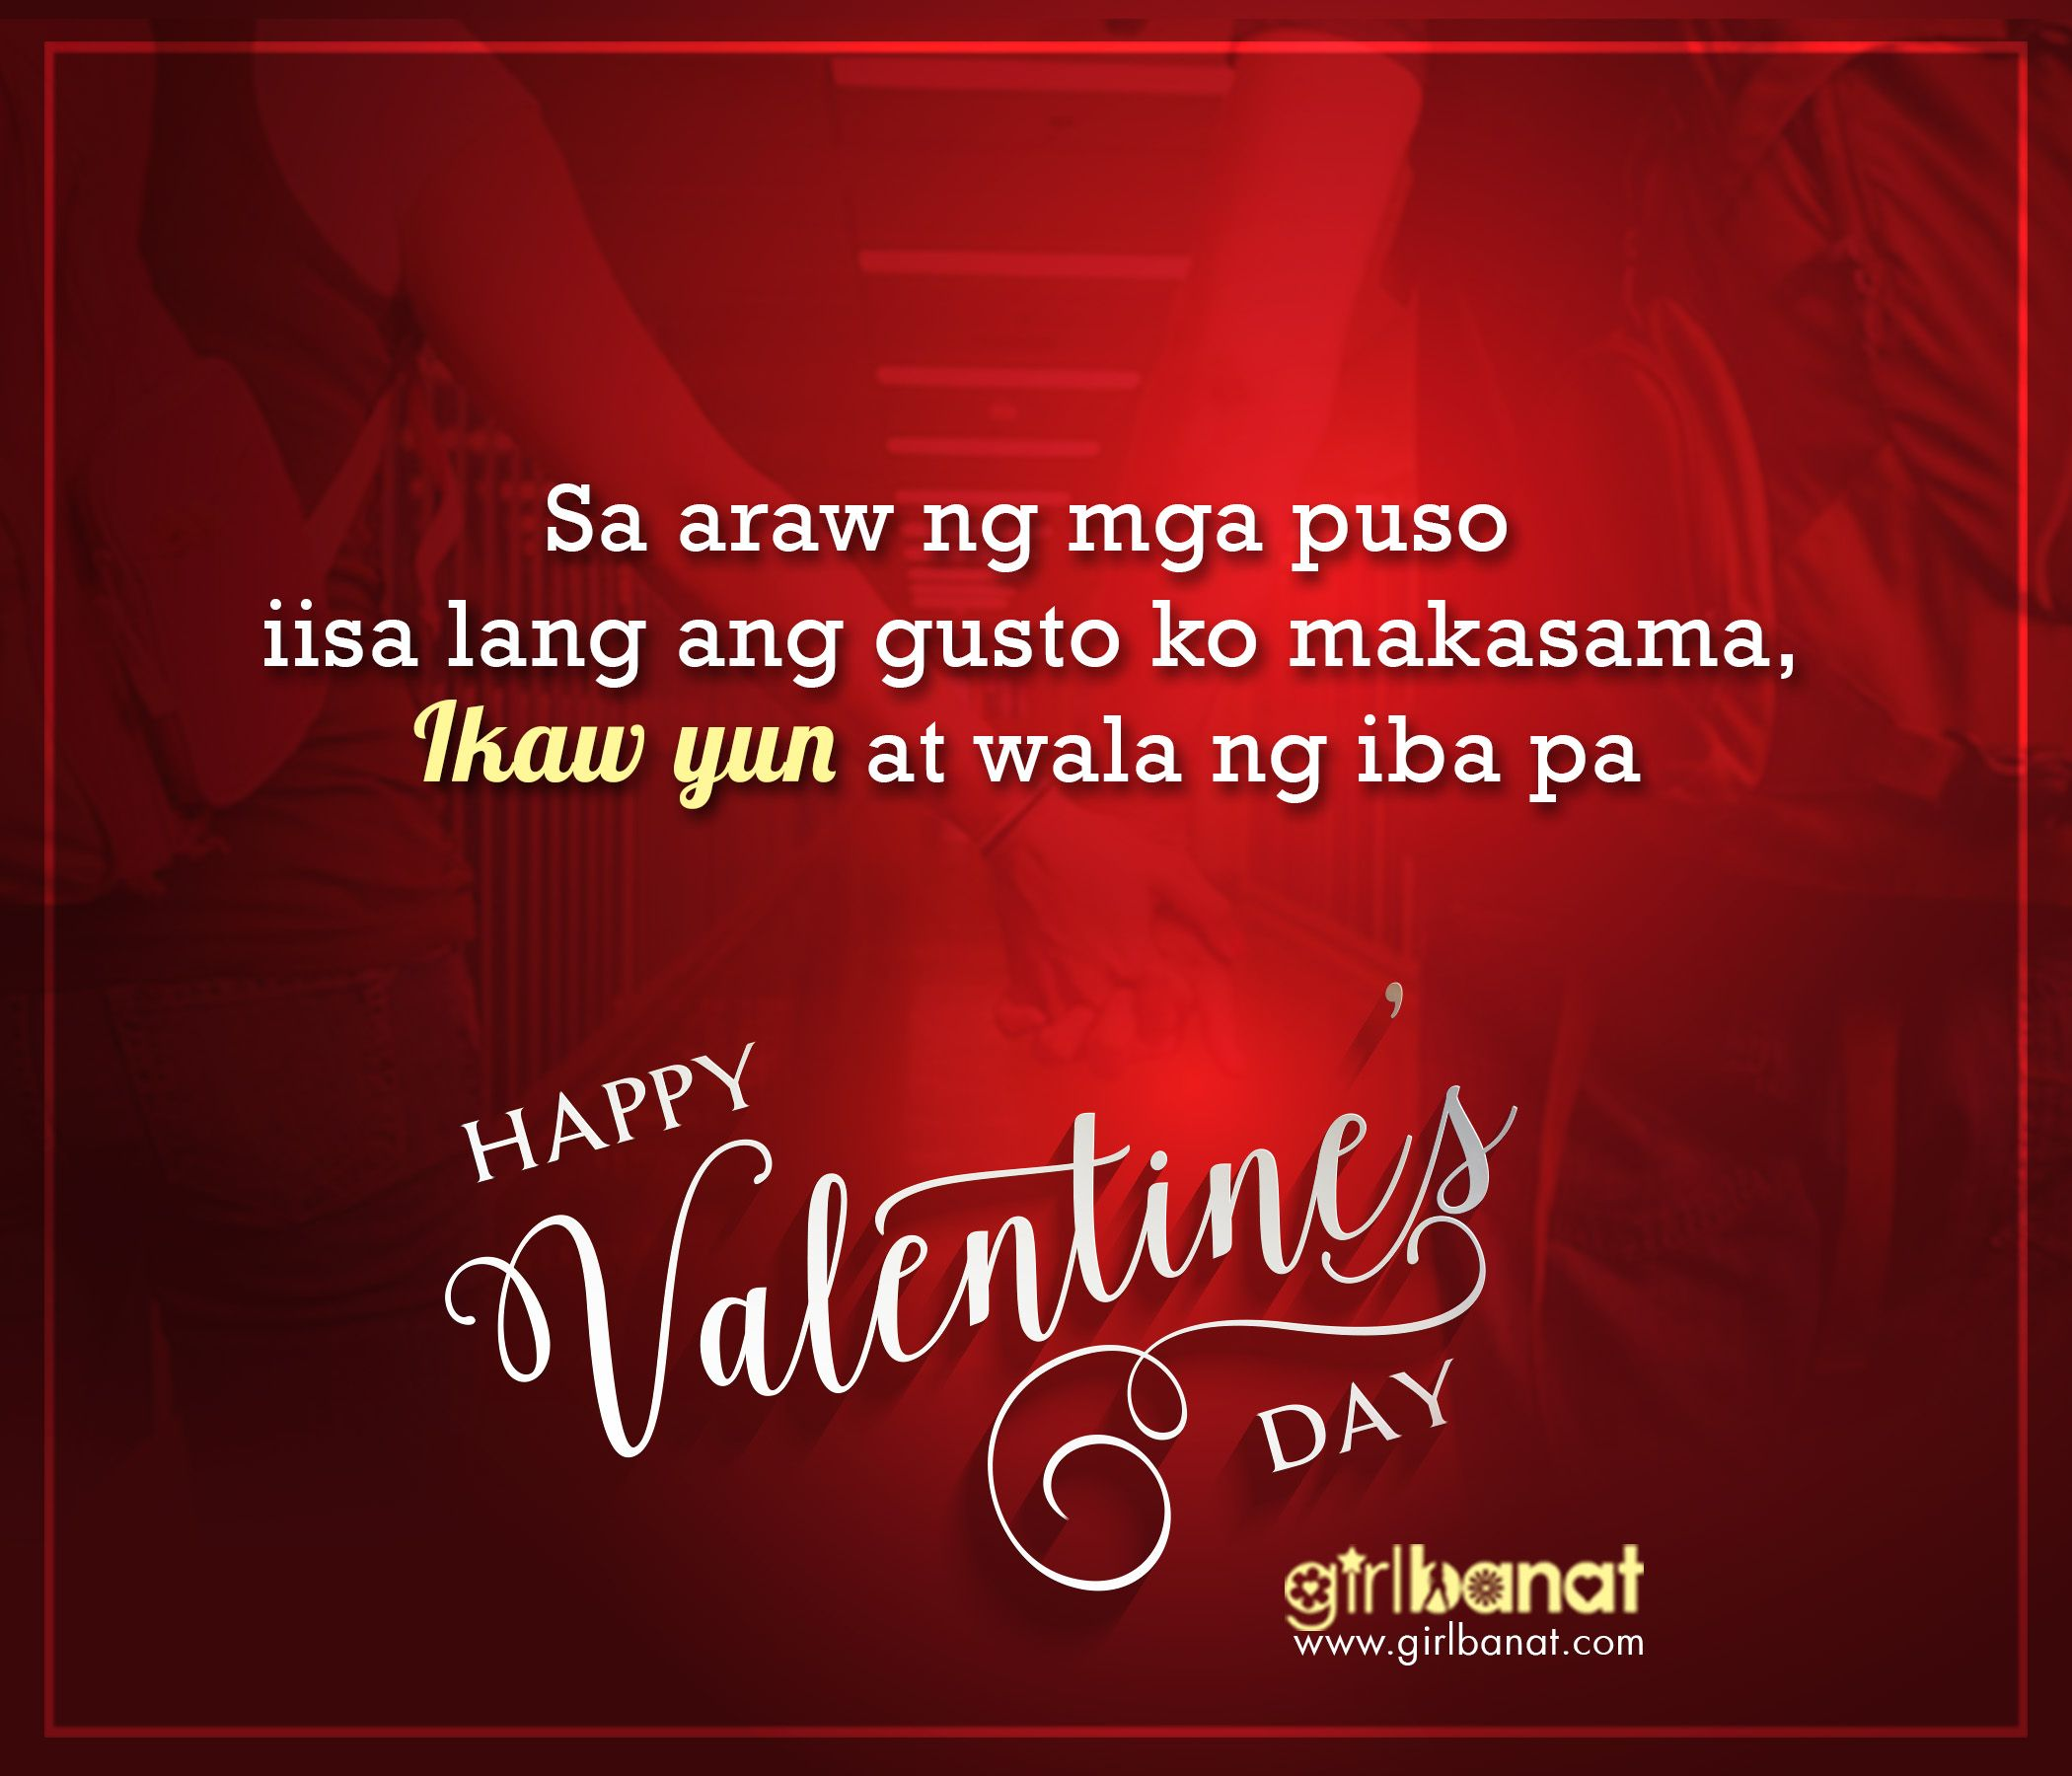 Tagalog Valentines Day Quotes Www Girlbanat Com Jpg 2100 1800 Tagalog Love Quotes Valentines Day Love Quotes Tagalog Quotes Hugot Funny